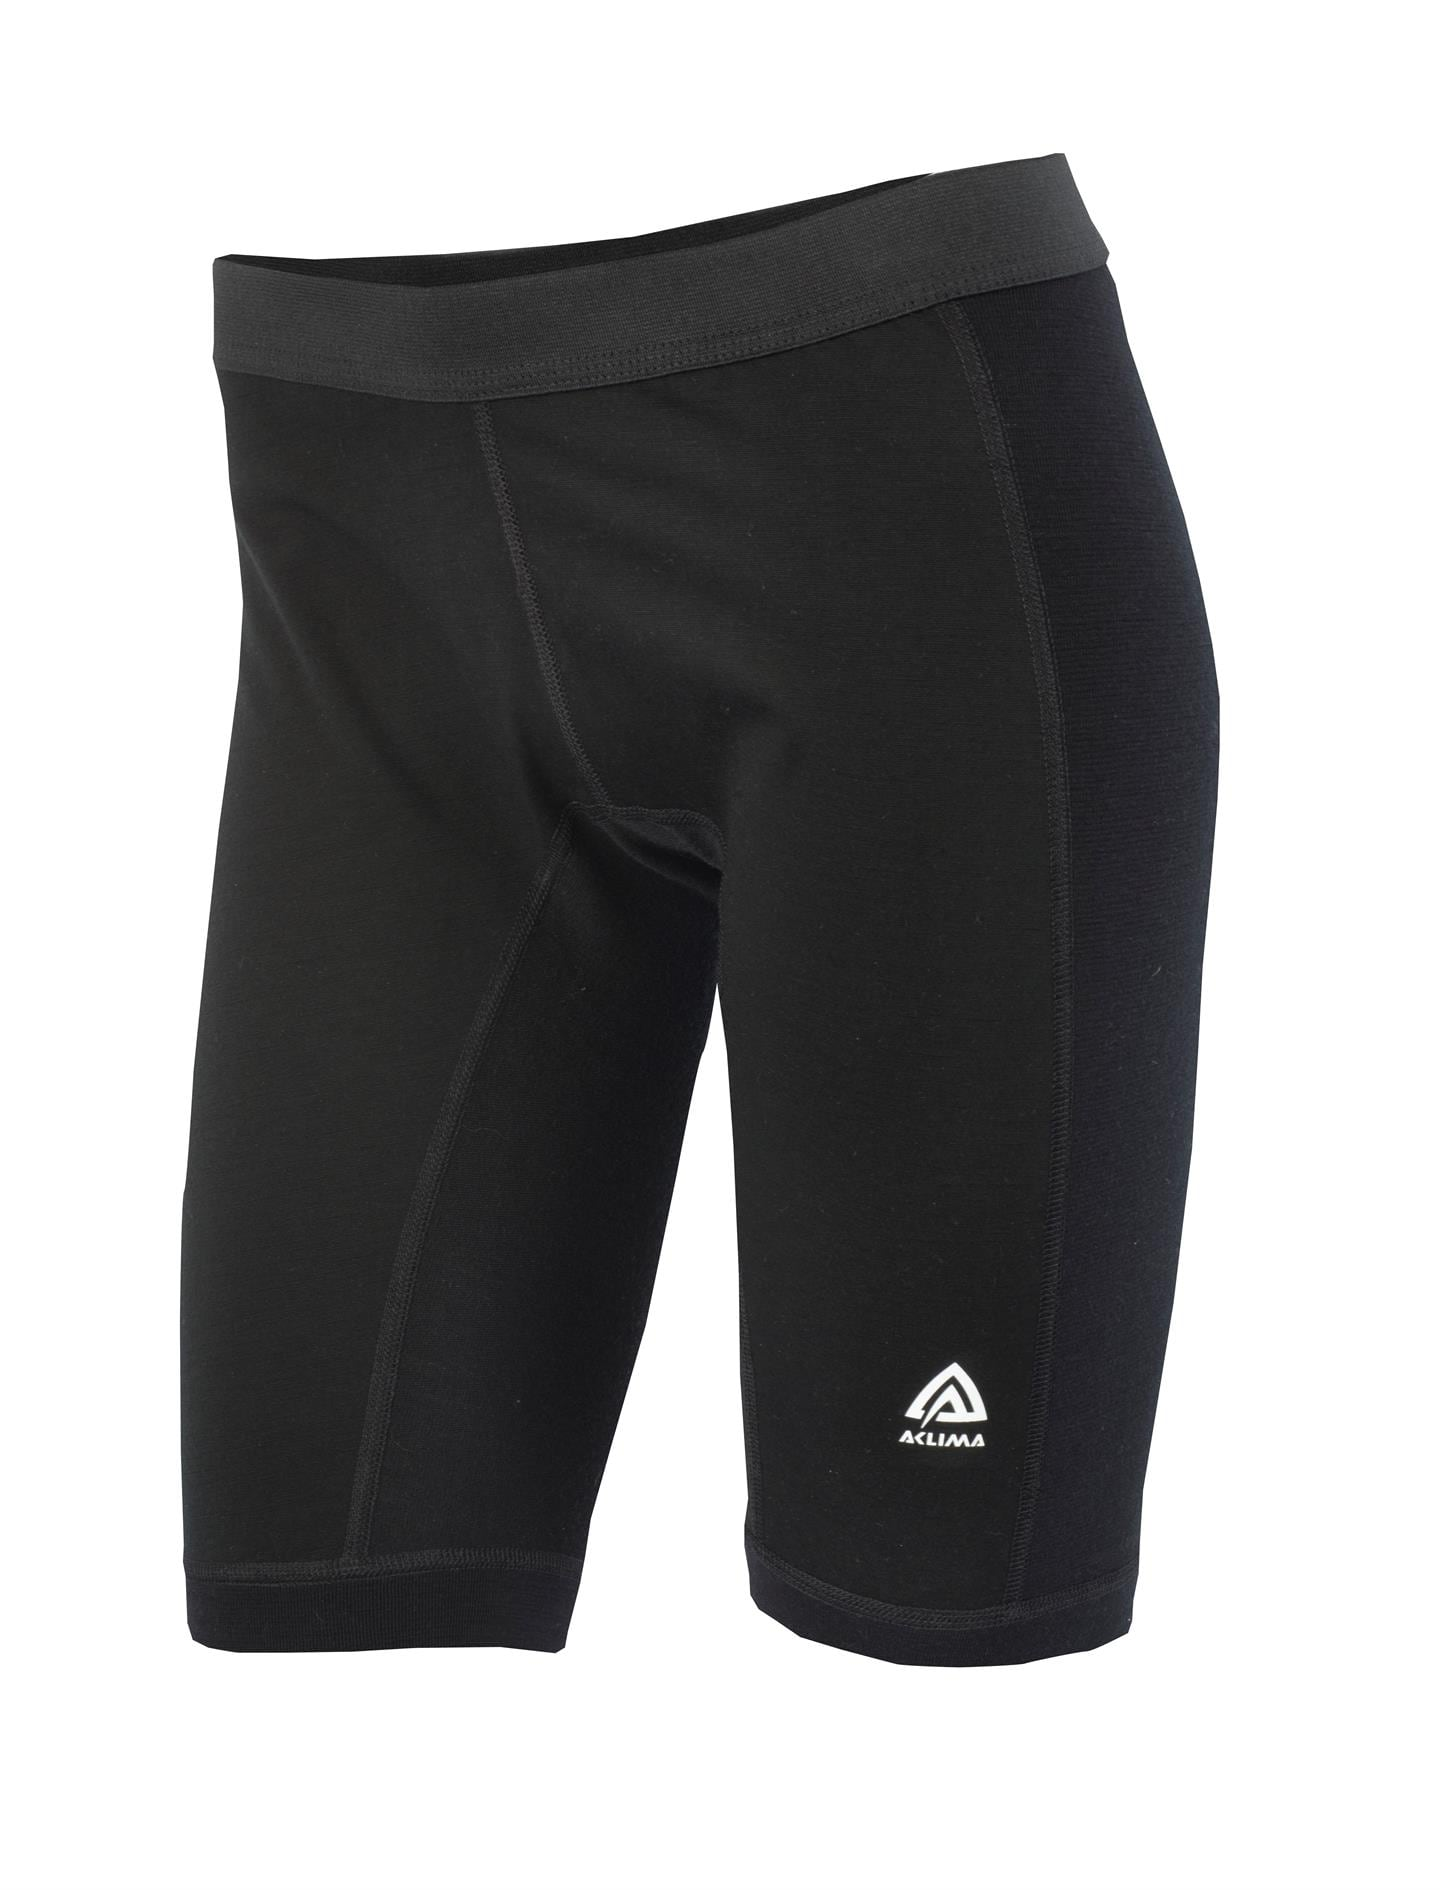 Aclima WarmWool Long Shorts m/Windstop, W's